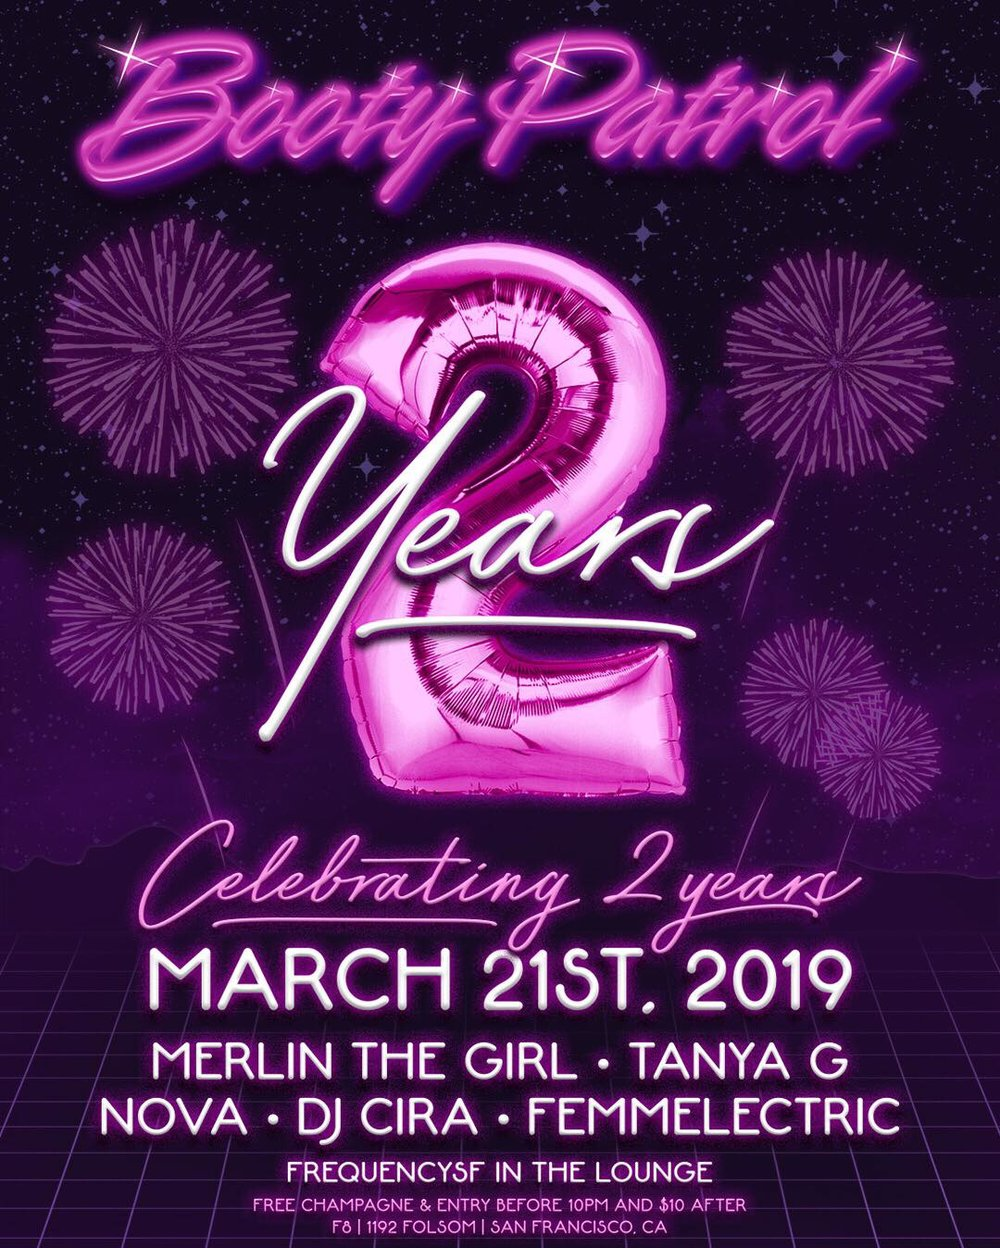 Booty Patrol: 2 Year Anniversary with FrequencySf - Thursday, March 21 @ 9pm @ F8 Nightclub